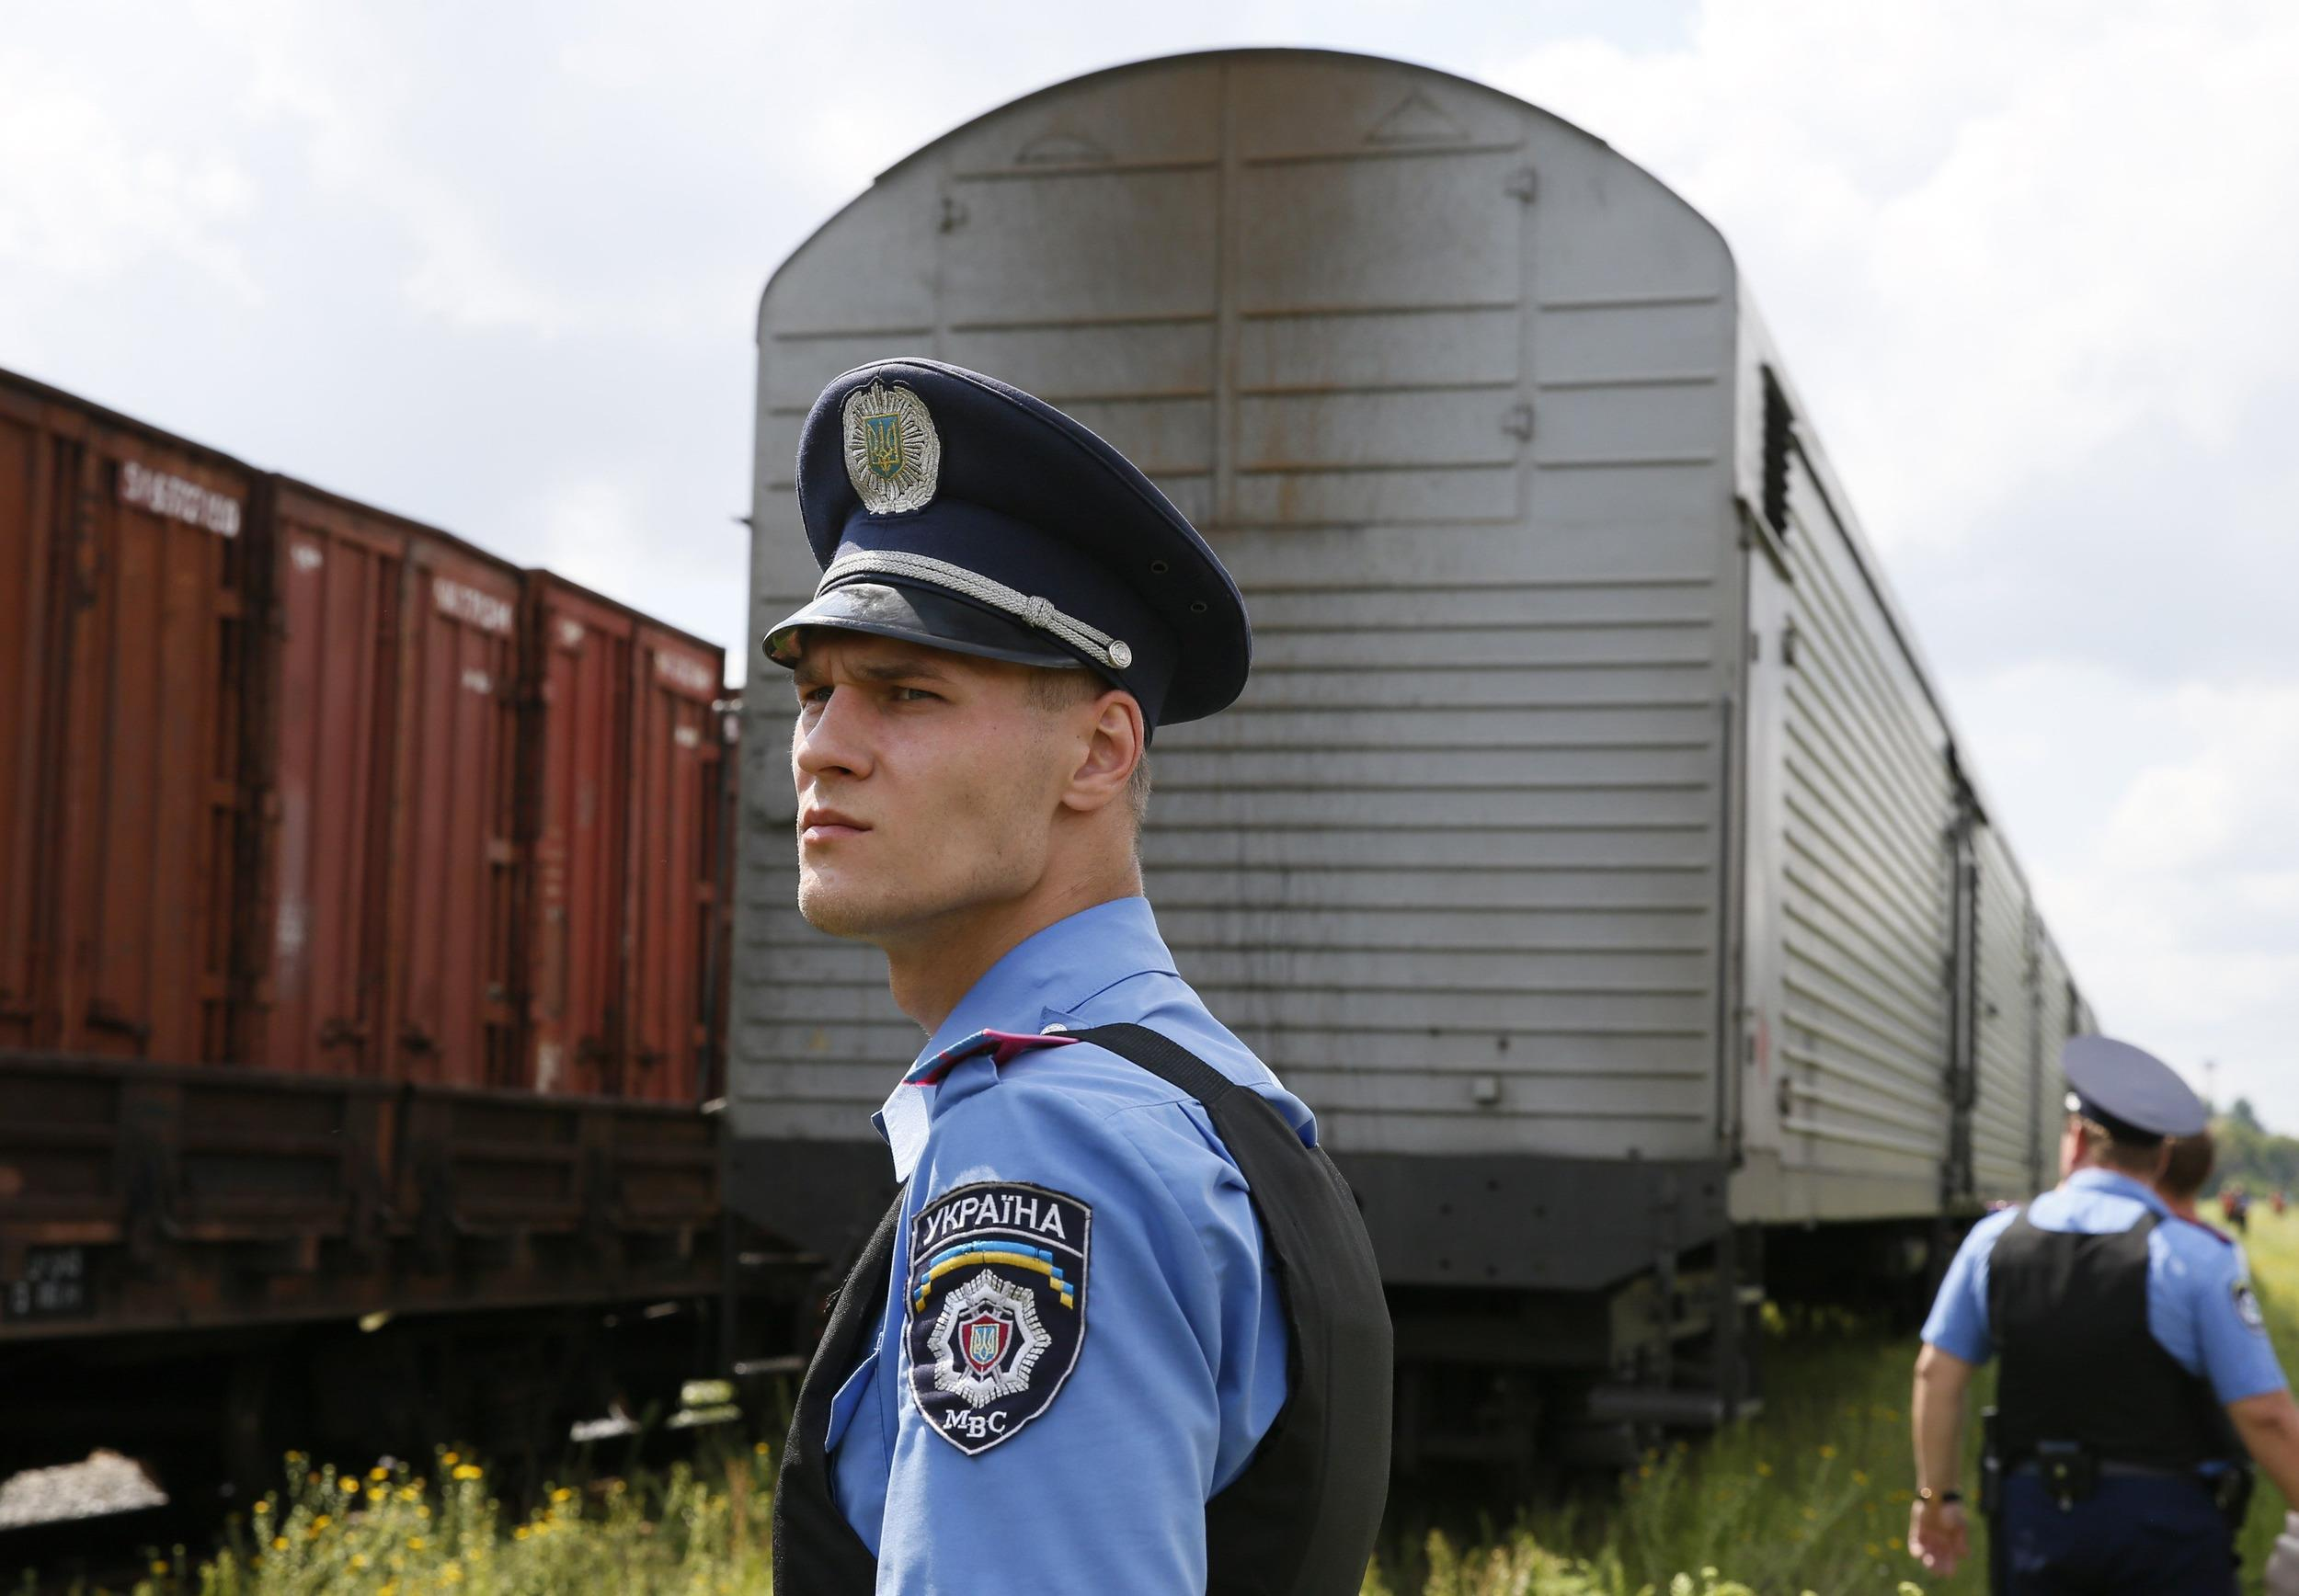 Image: A Ukrainian policeman watches as a train carrying the remains of Malaysia Airlines MH17 victims arrives in Kharkiv